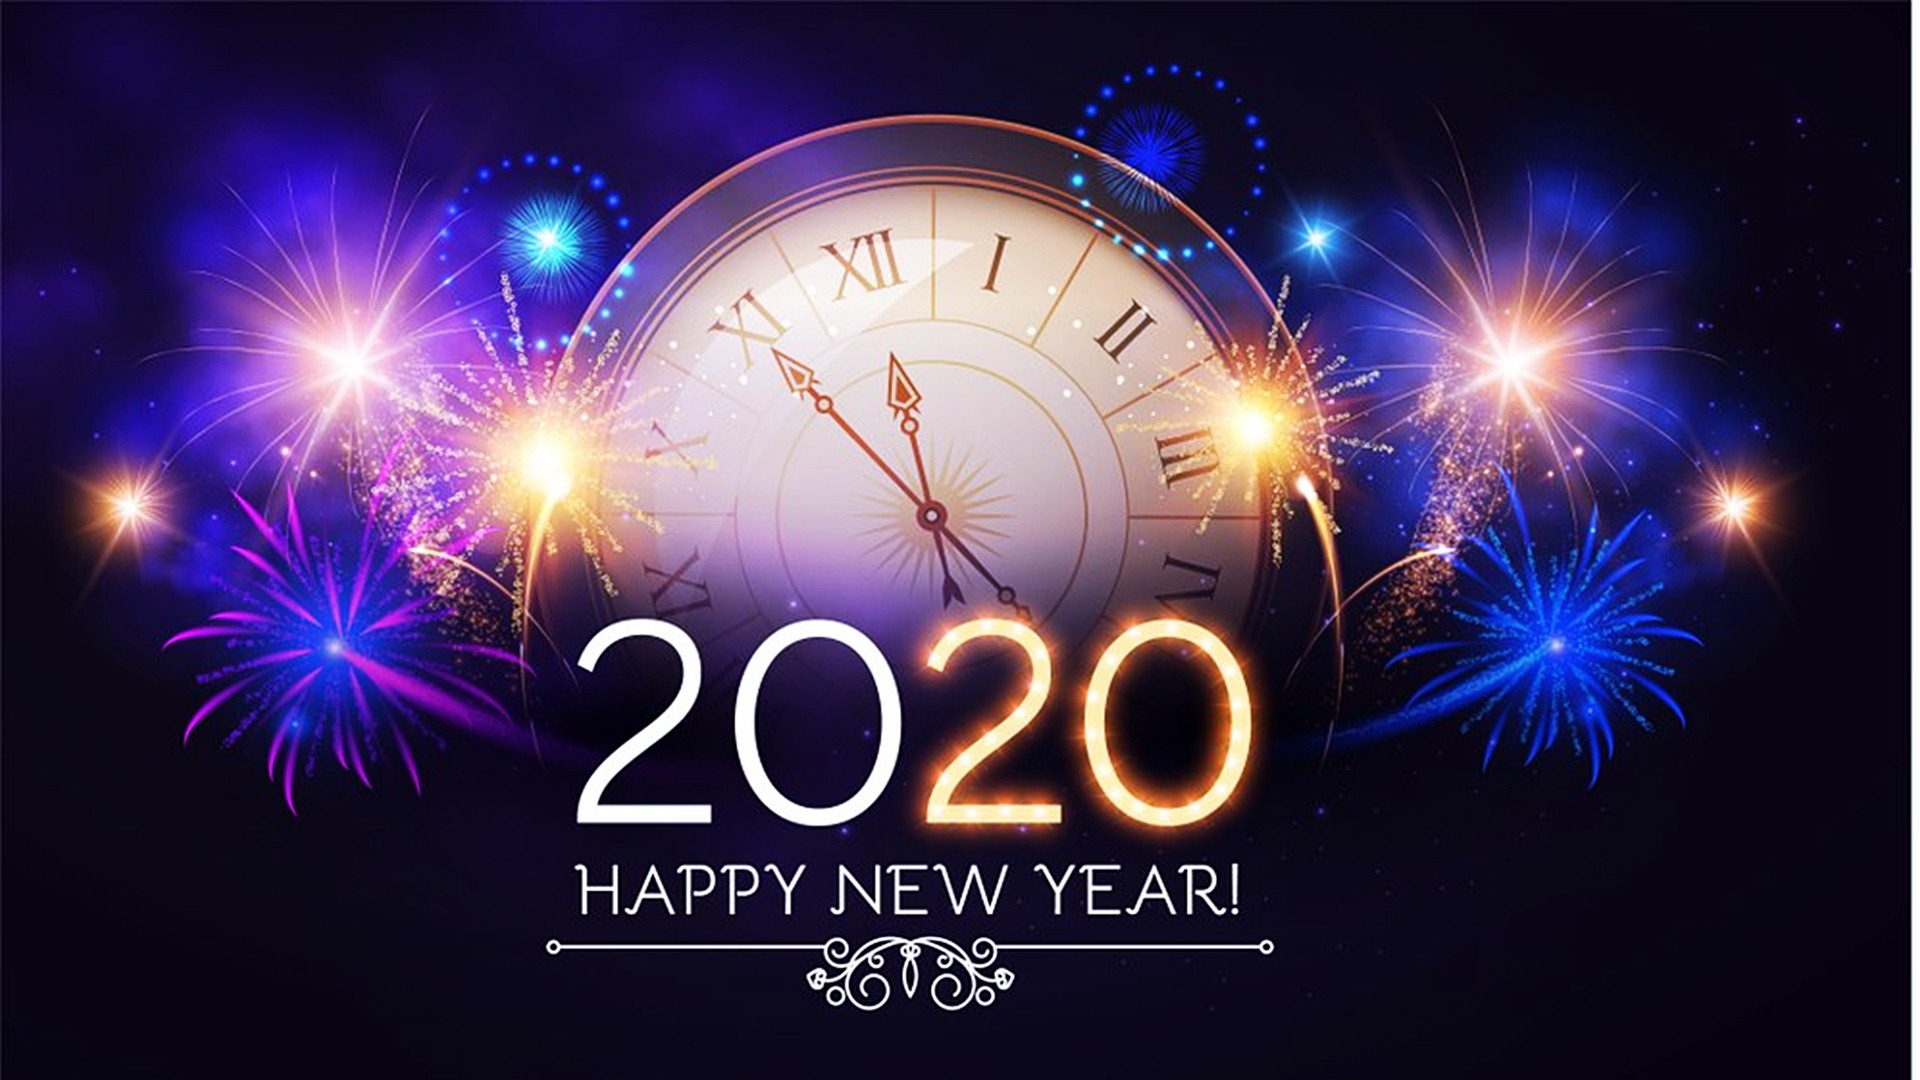 Happy New Year 2020 High Definition Wallpaper 45552   Baltana 1920x1080